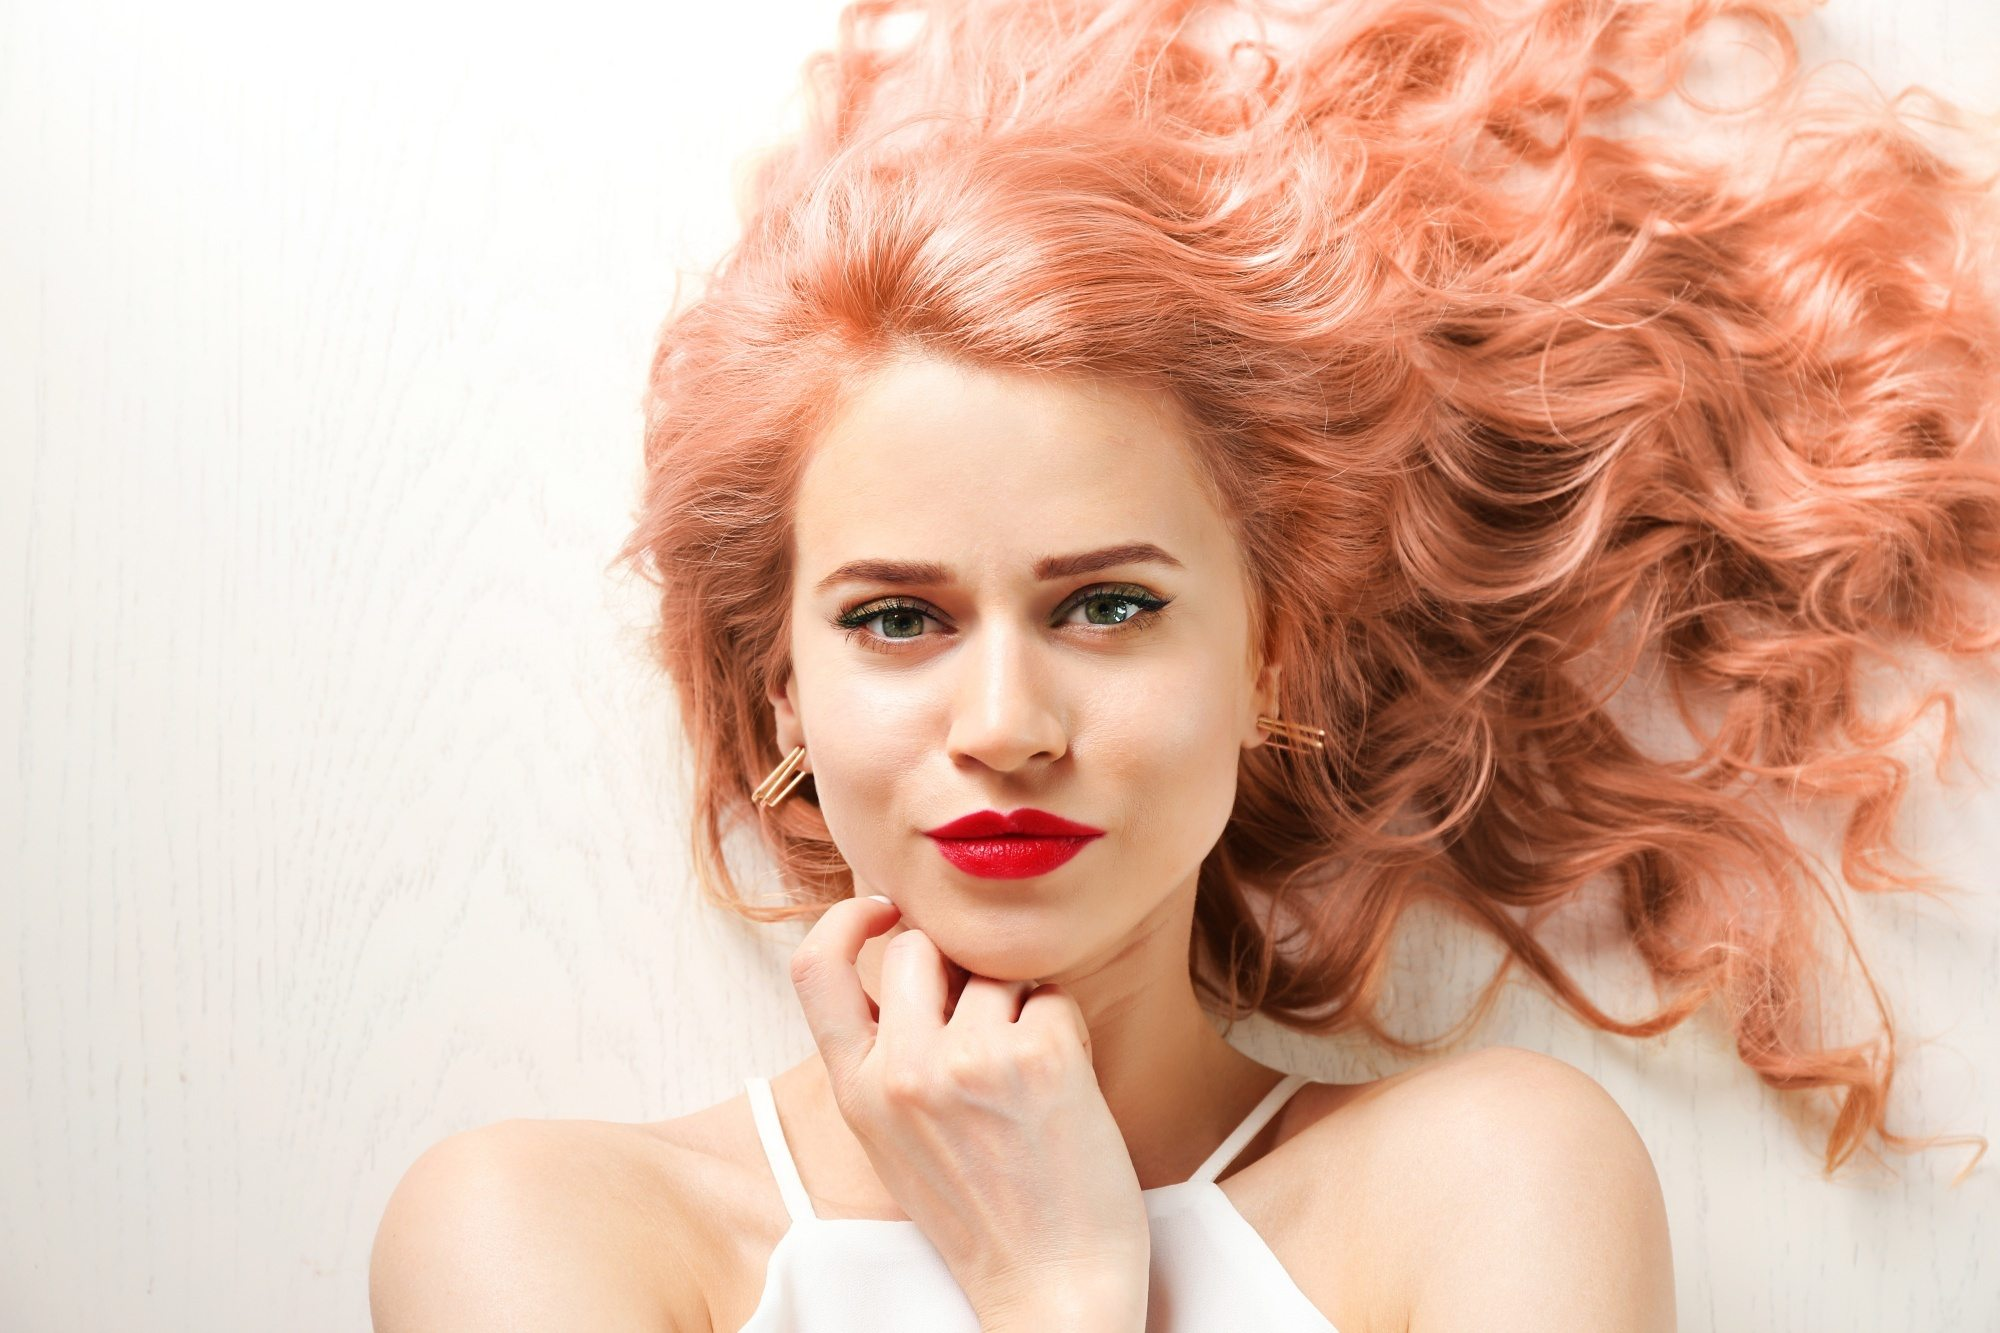 Bleached hair colors: woman with her strawberry blonde laid down